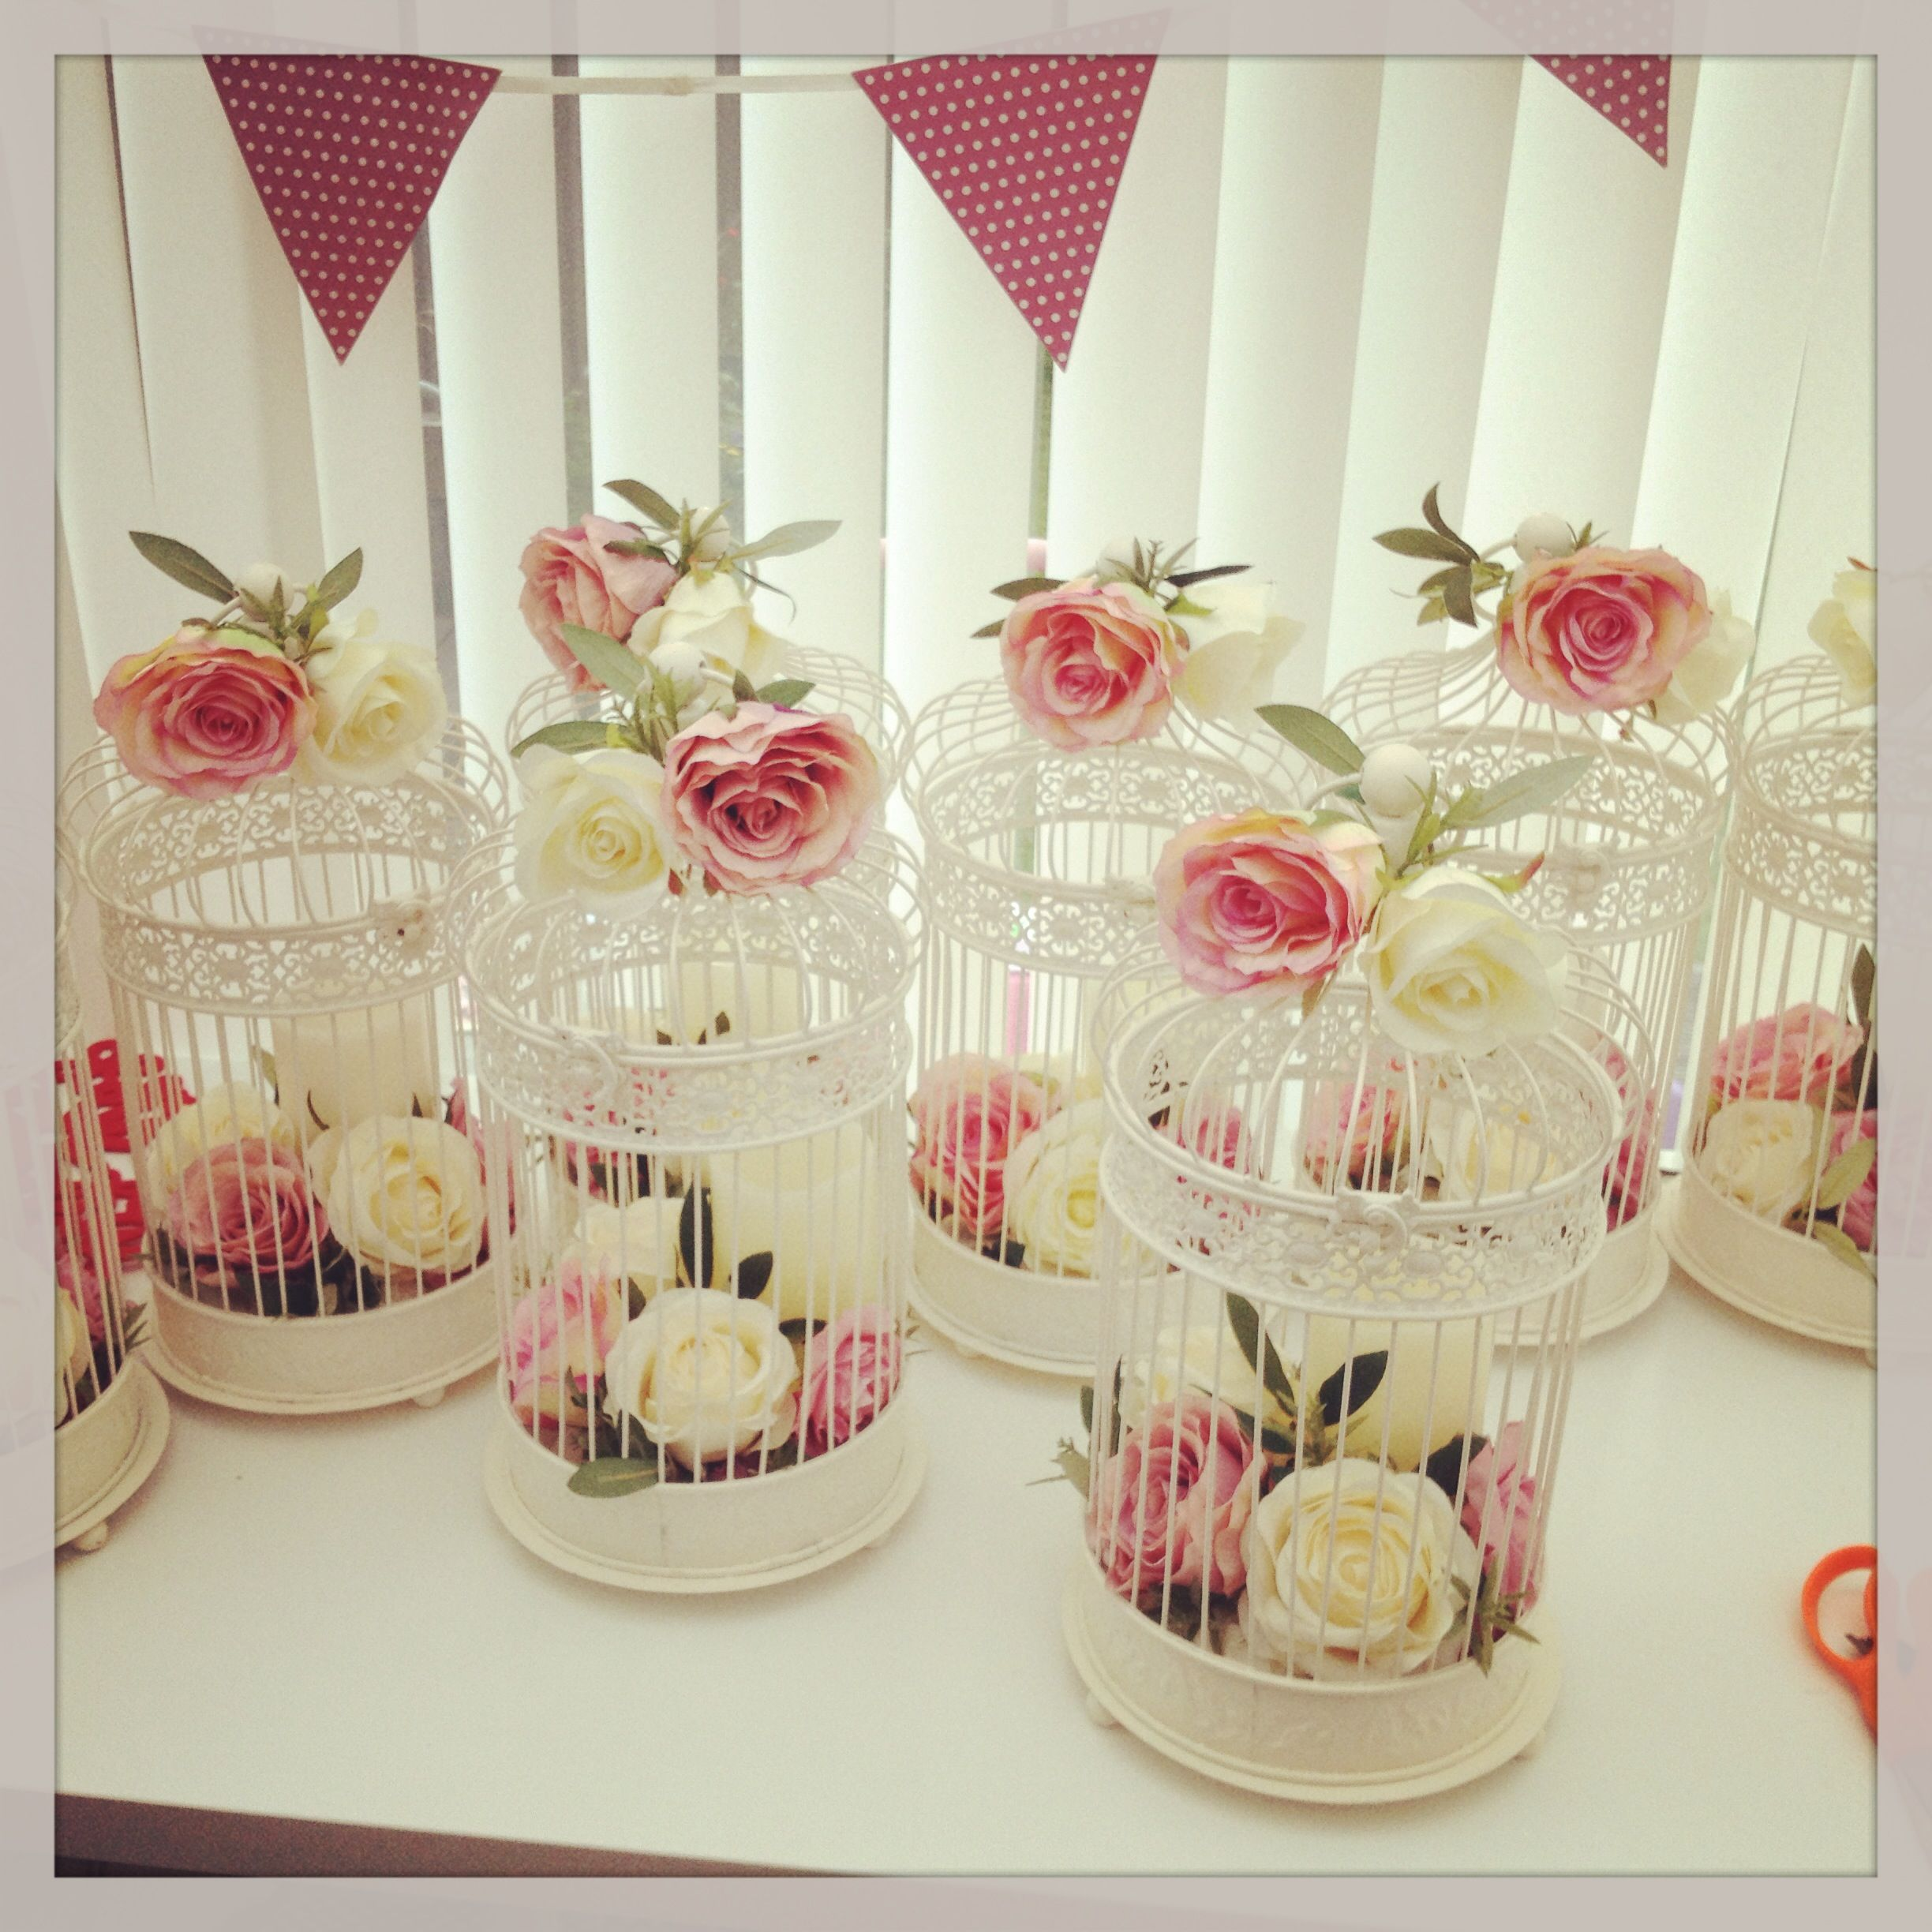 wedding supplies Lots of lovely vintage birdcage centrepieces by Elegant Wedding Supplies ready for a wedding